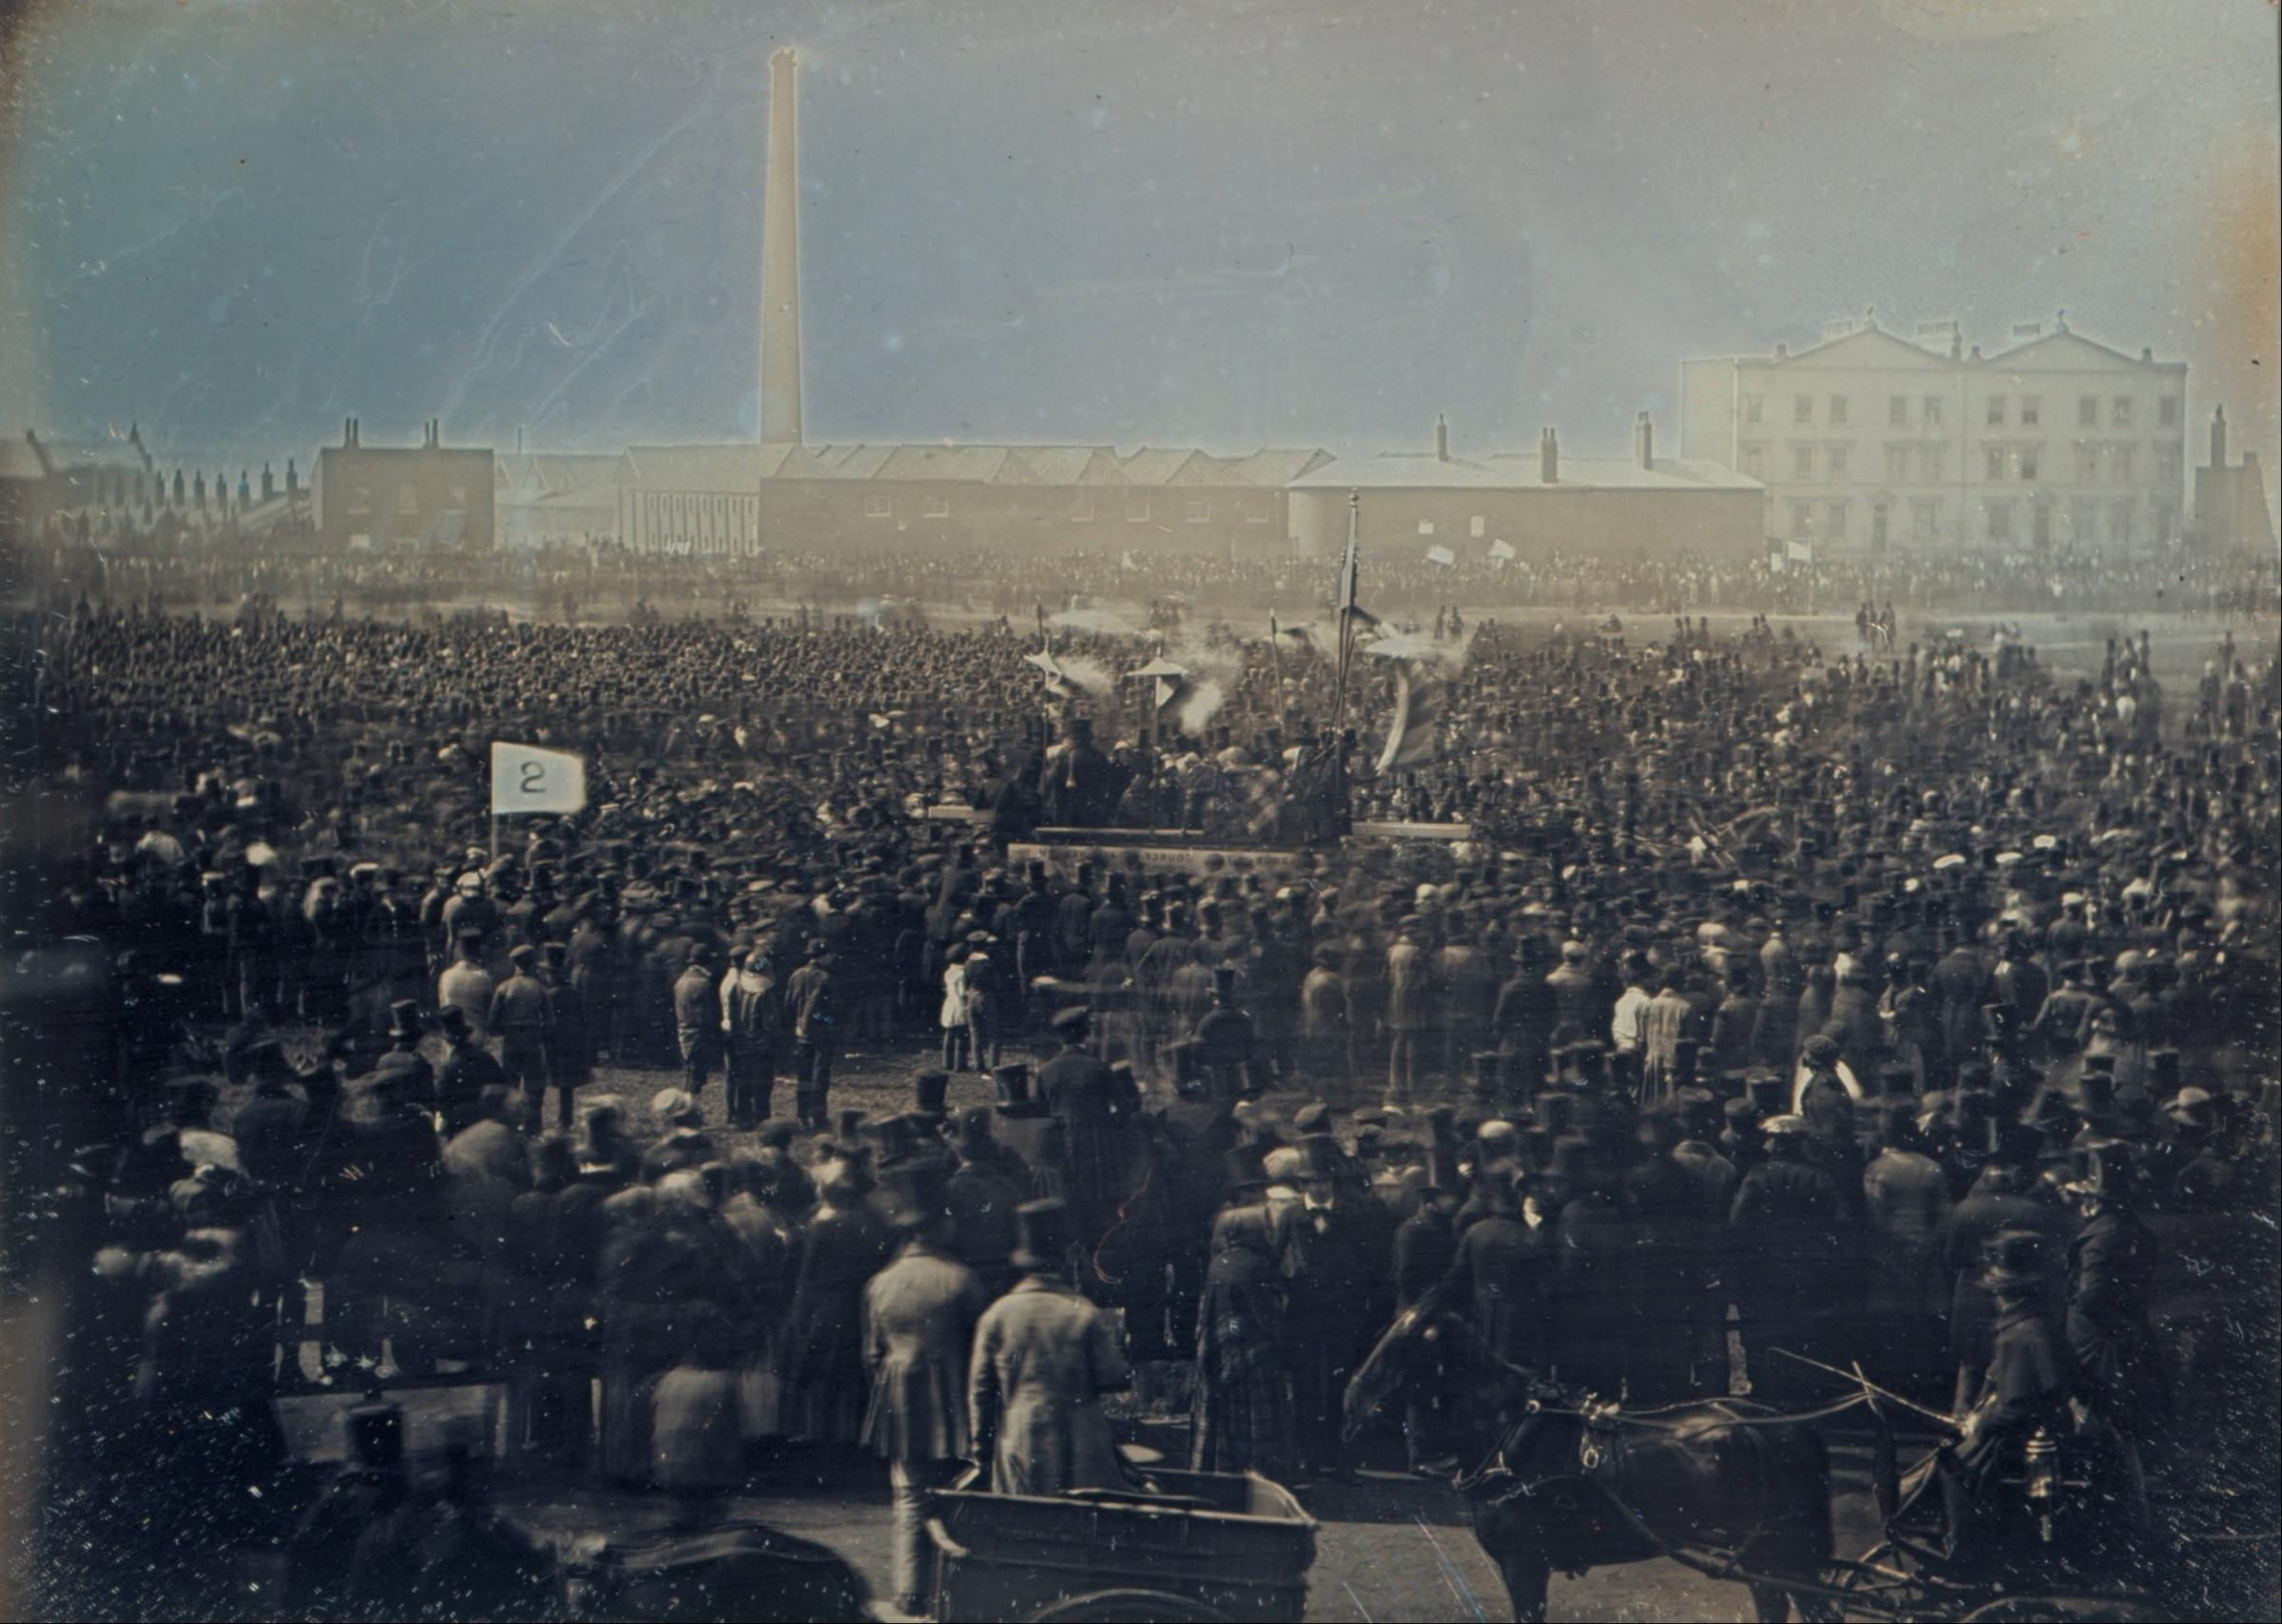 A photograph of the Great Chartist Meeting on Kennington Common in 1848